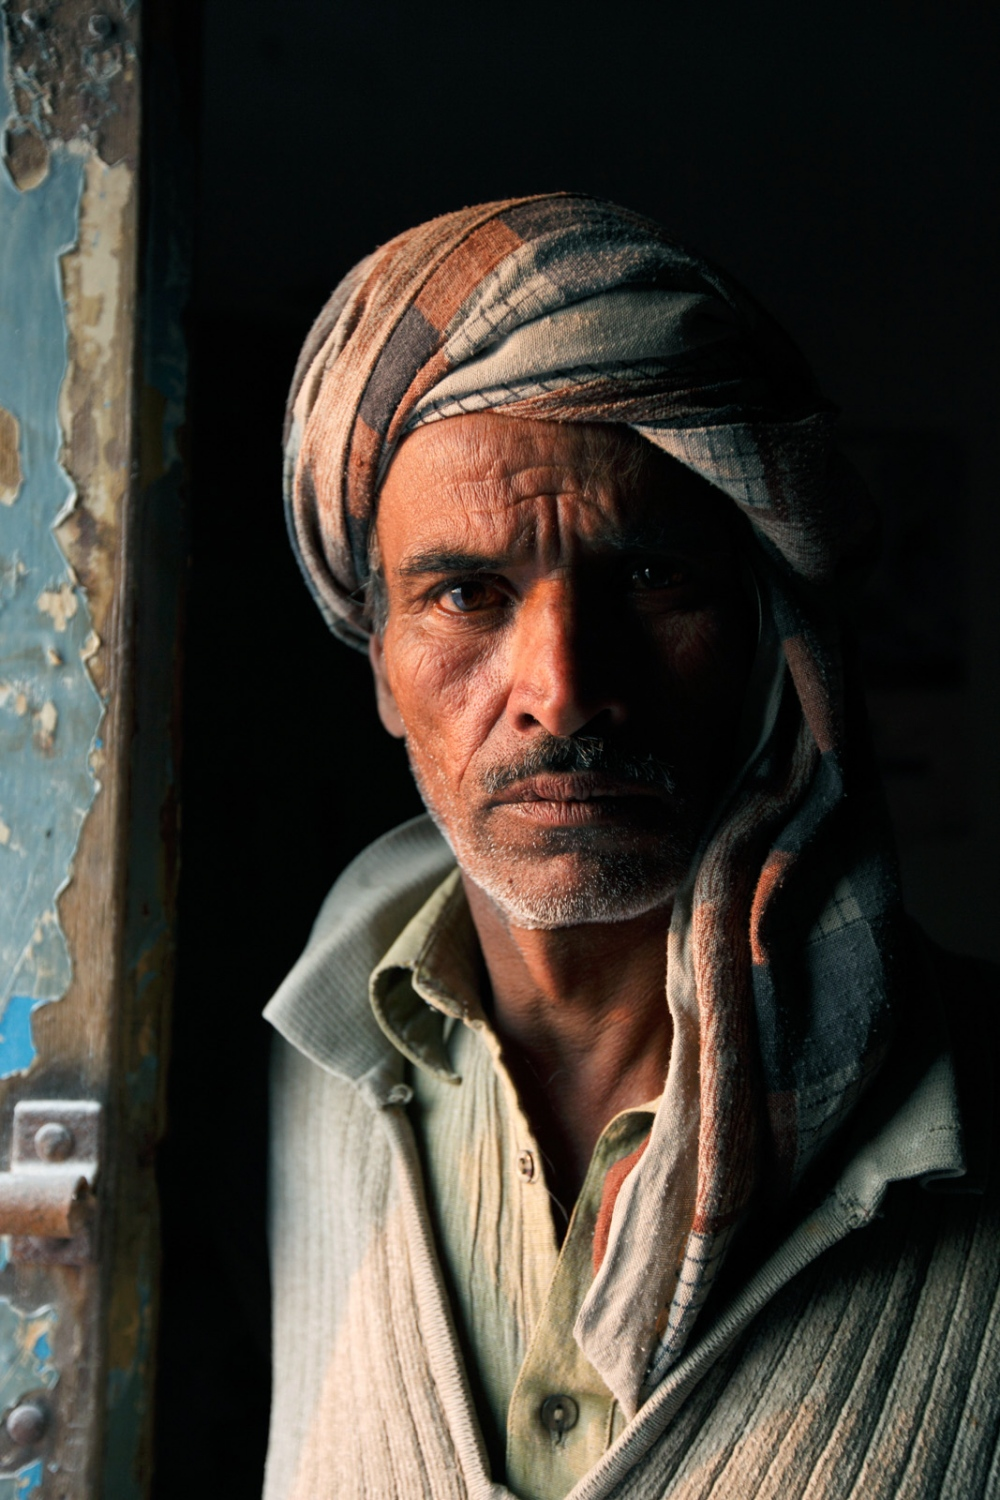 A salt carver stands in the doorway of his workshop at the distribution area of the Khewra Salt mine.